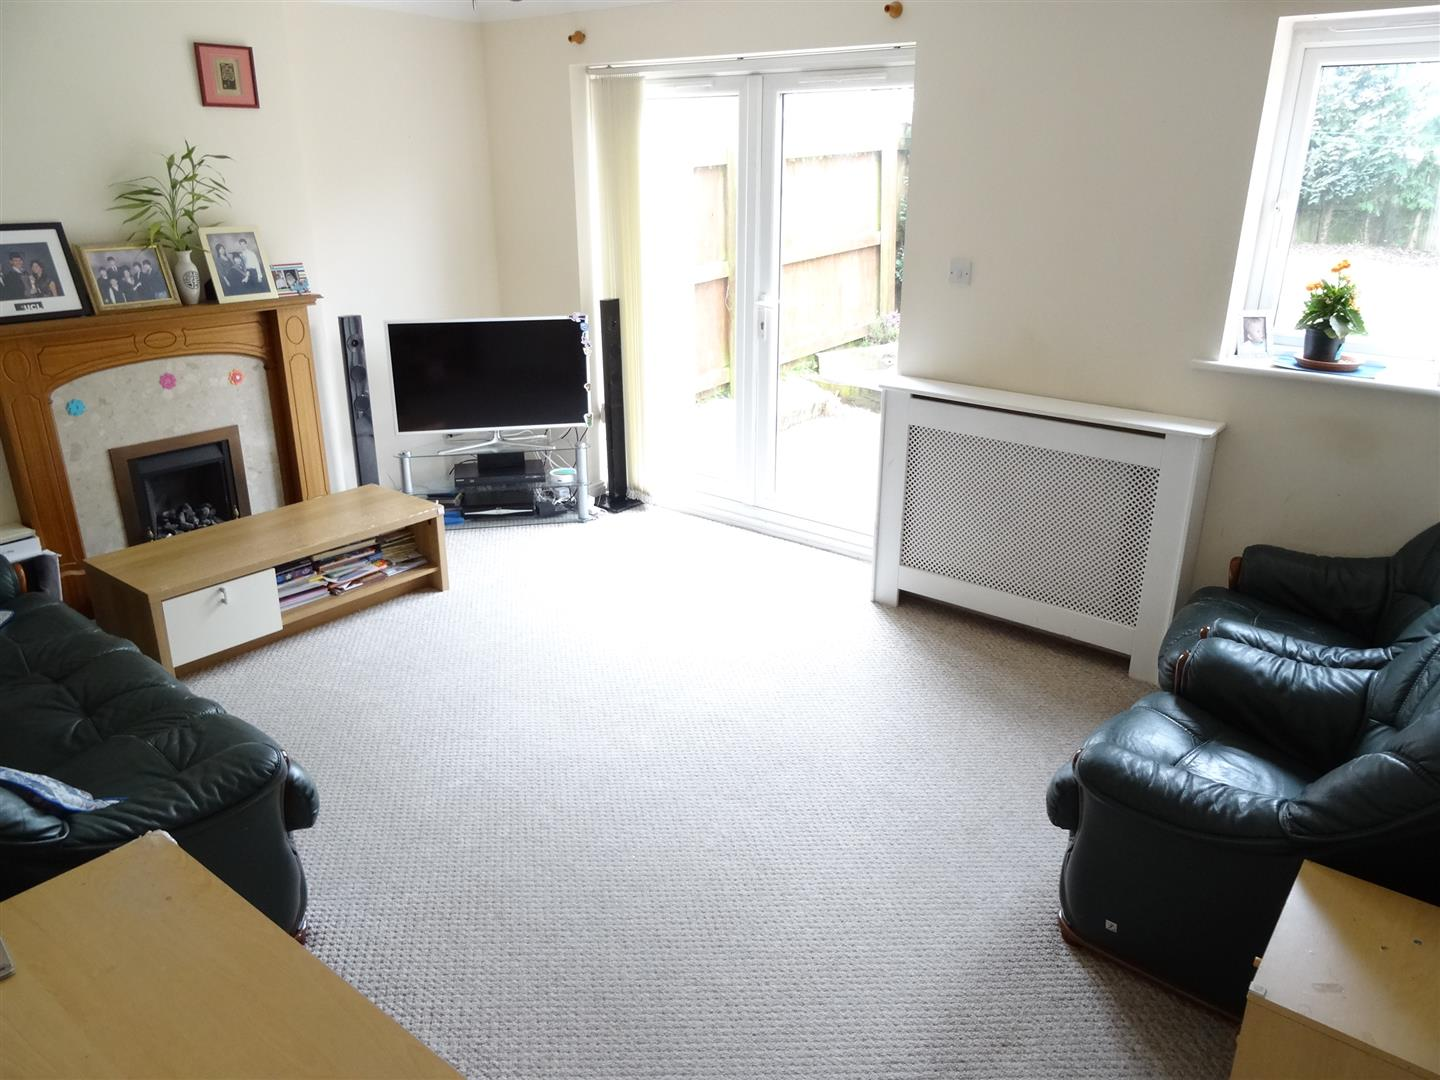 4 Bedrooms House - Detached For Sale 28 Pennington Drive Carlisle